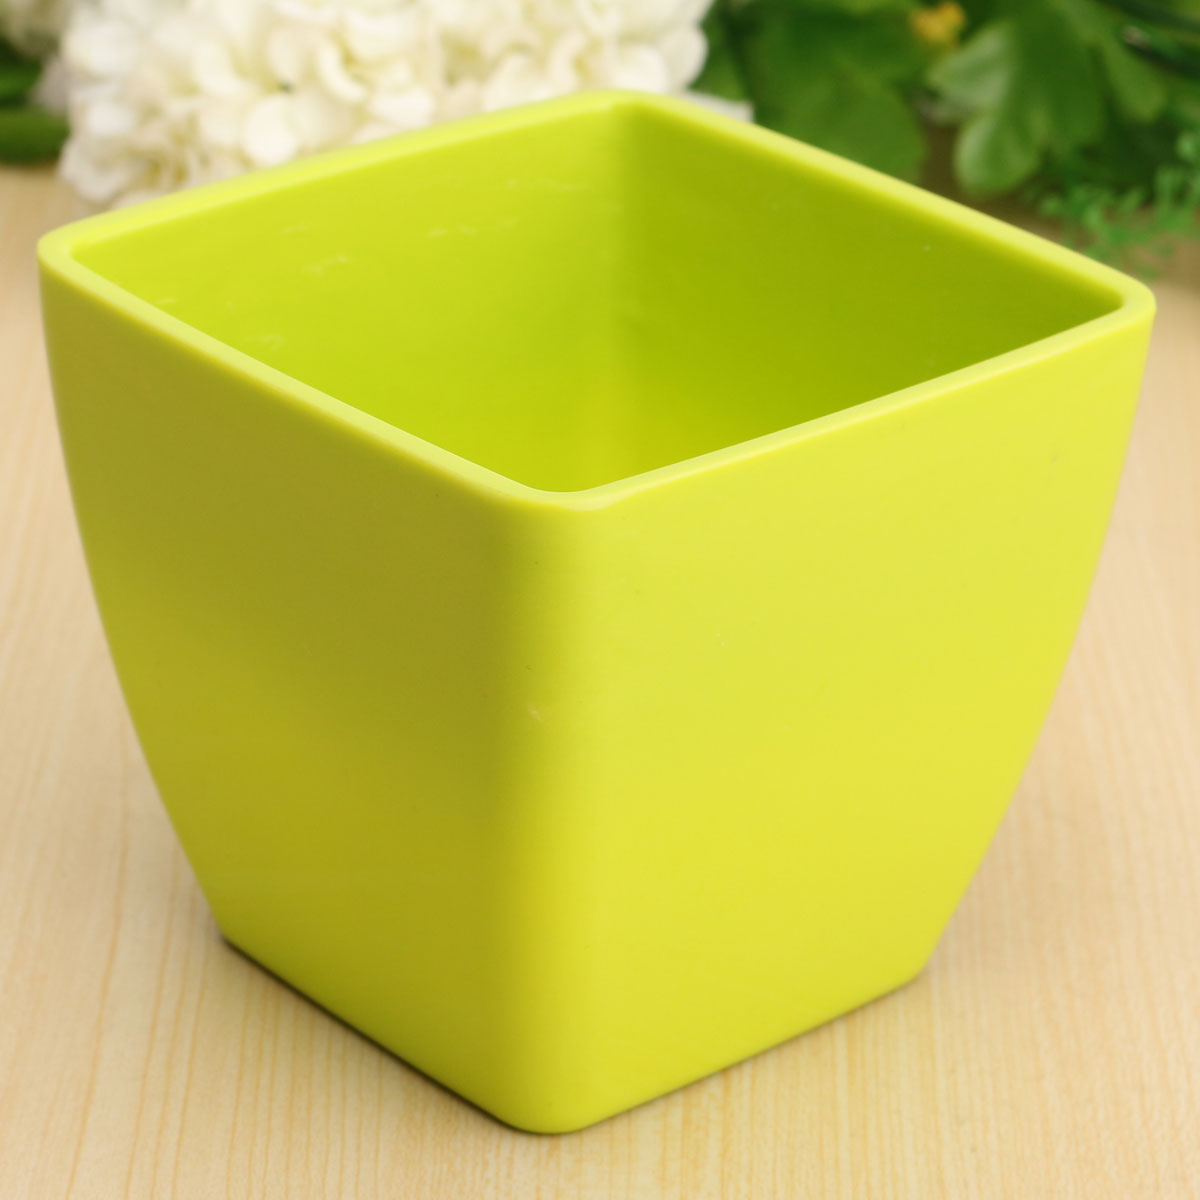 Colorful Square Plastic Flower Pots Floral Fleshy Household Home Gardening Decor